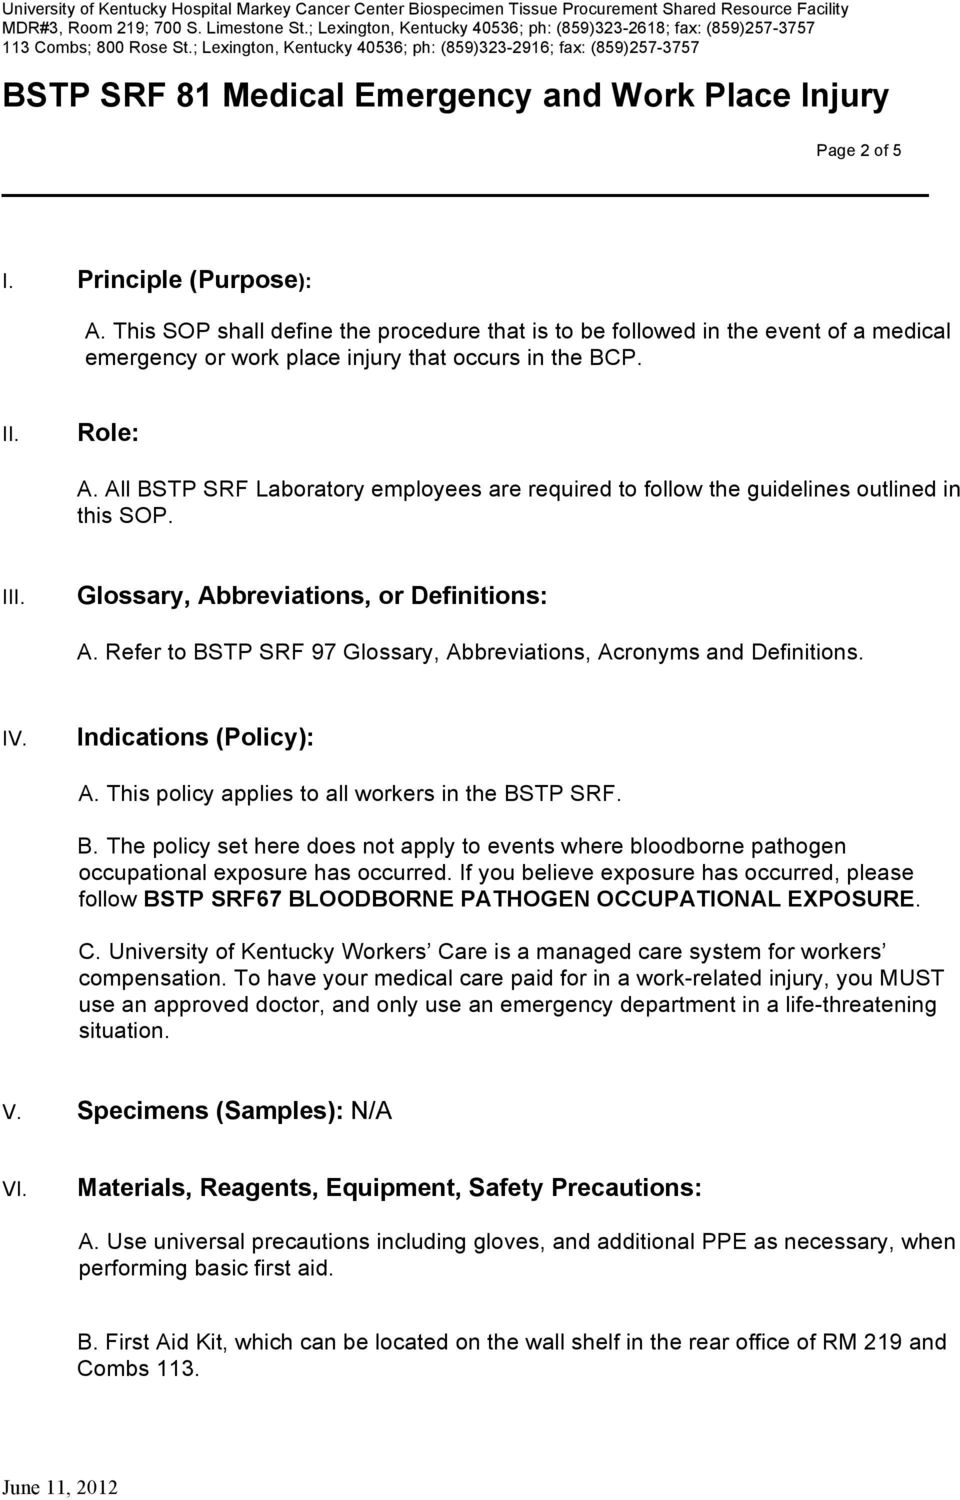 Refer to BSTP SRF 97 Glossary, Abbreviations, Acronyms and Definitions. IV. Indications (Policy): A. This policy applies to all workers in the BSTP SRF. B. The policy set here does not apply to events where bloodborne pathogen occupational exposure has occurred.